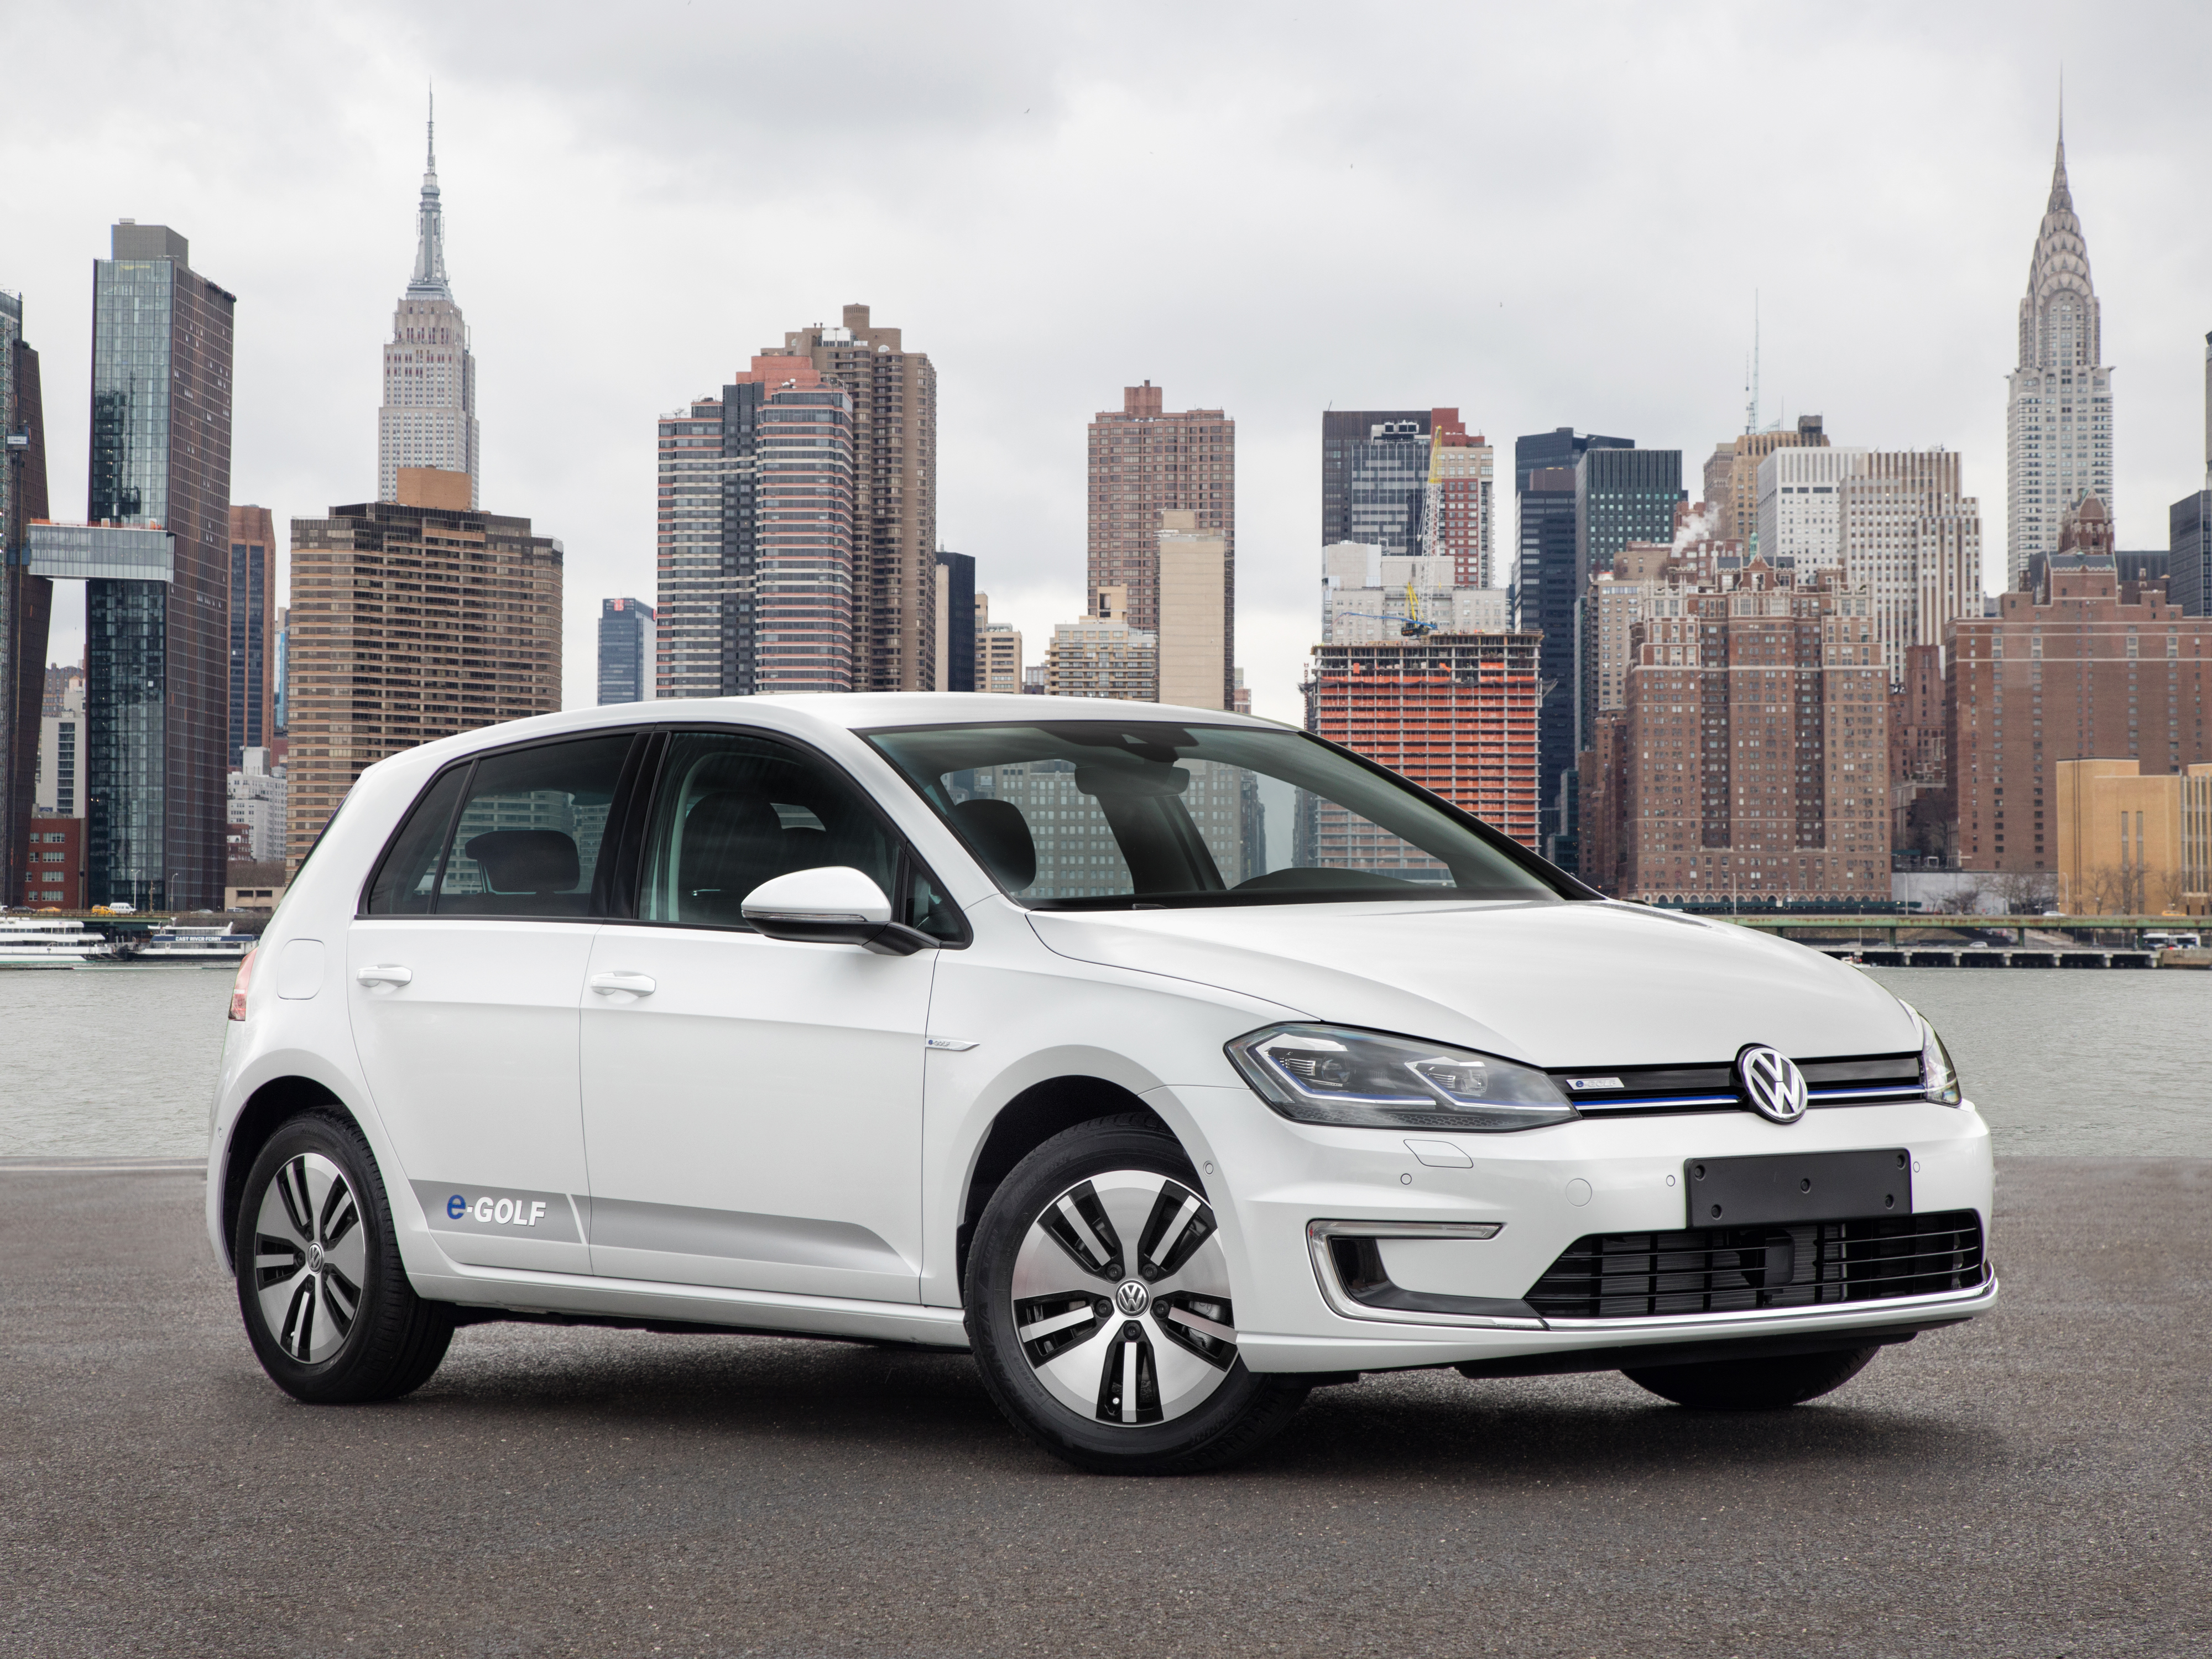 Here S A Gallery Of Pictures The 2017 Vw E Golf